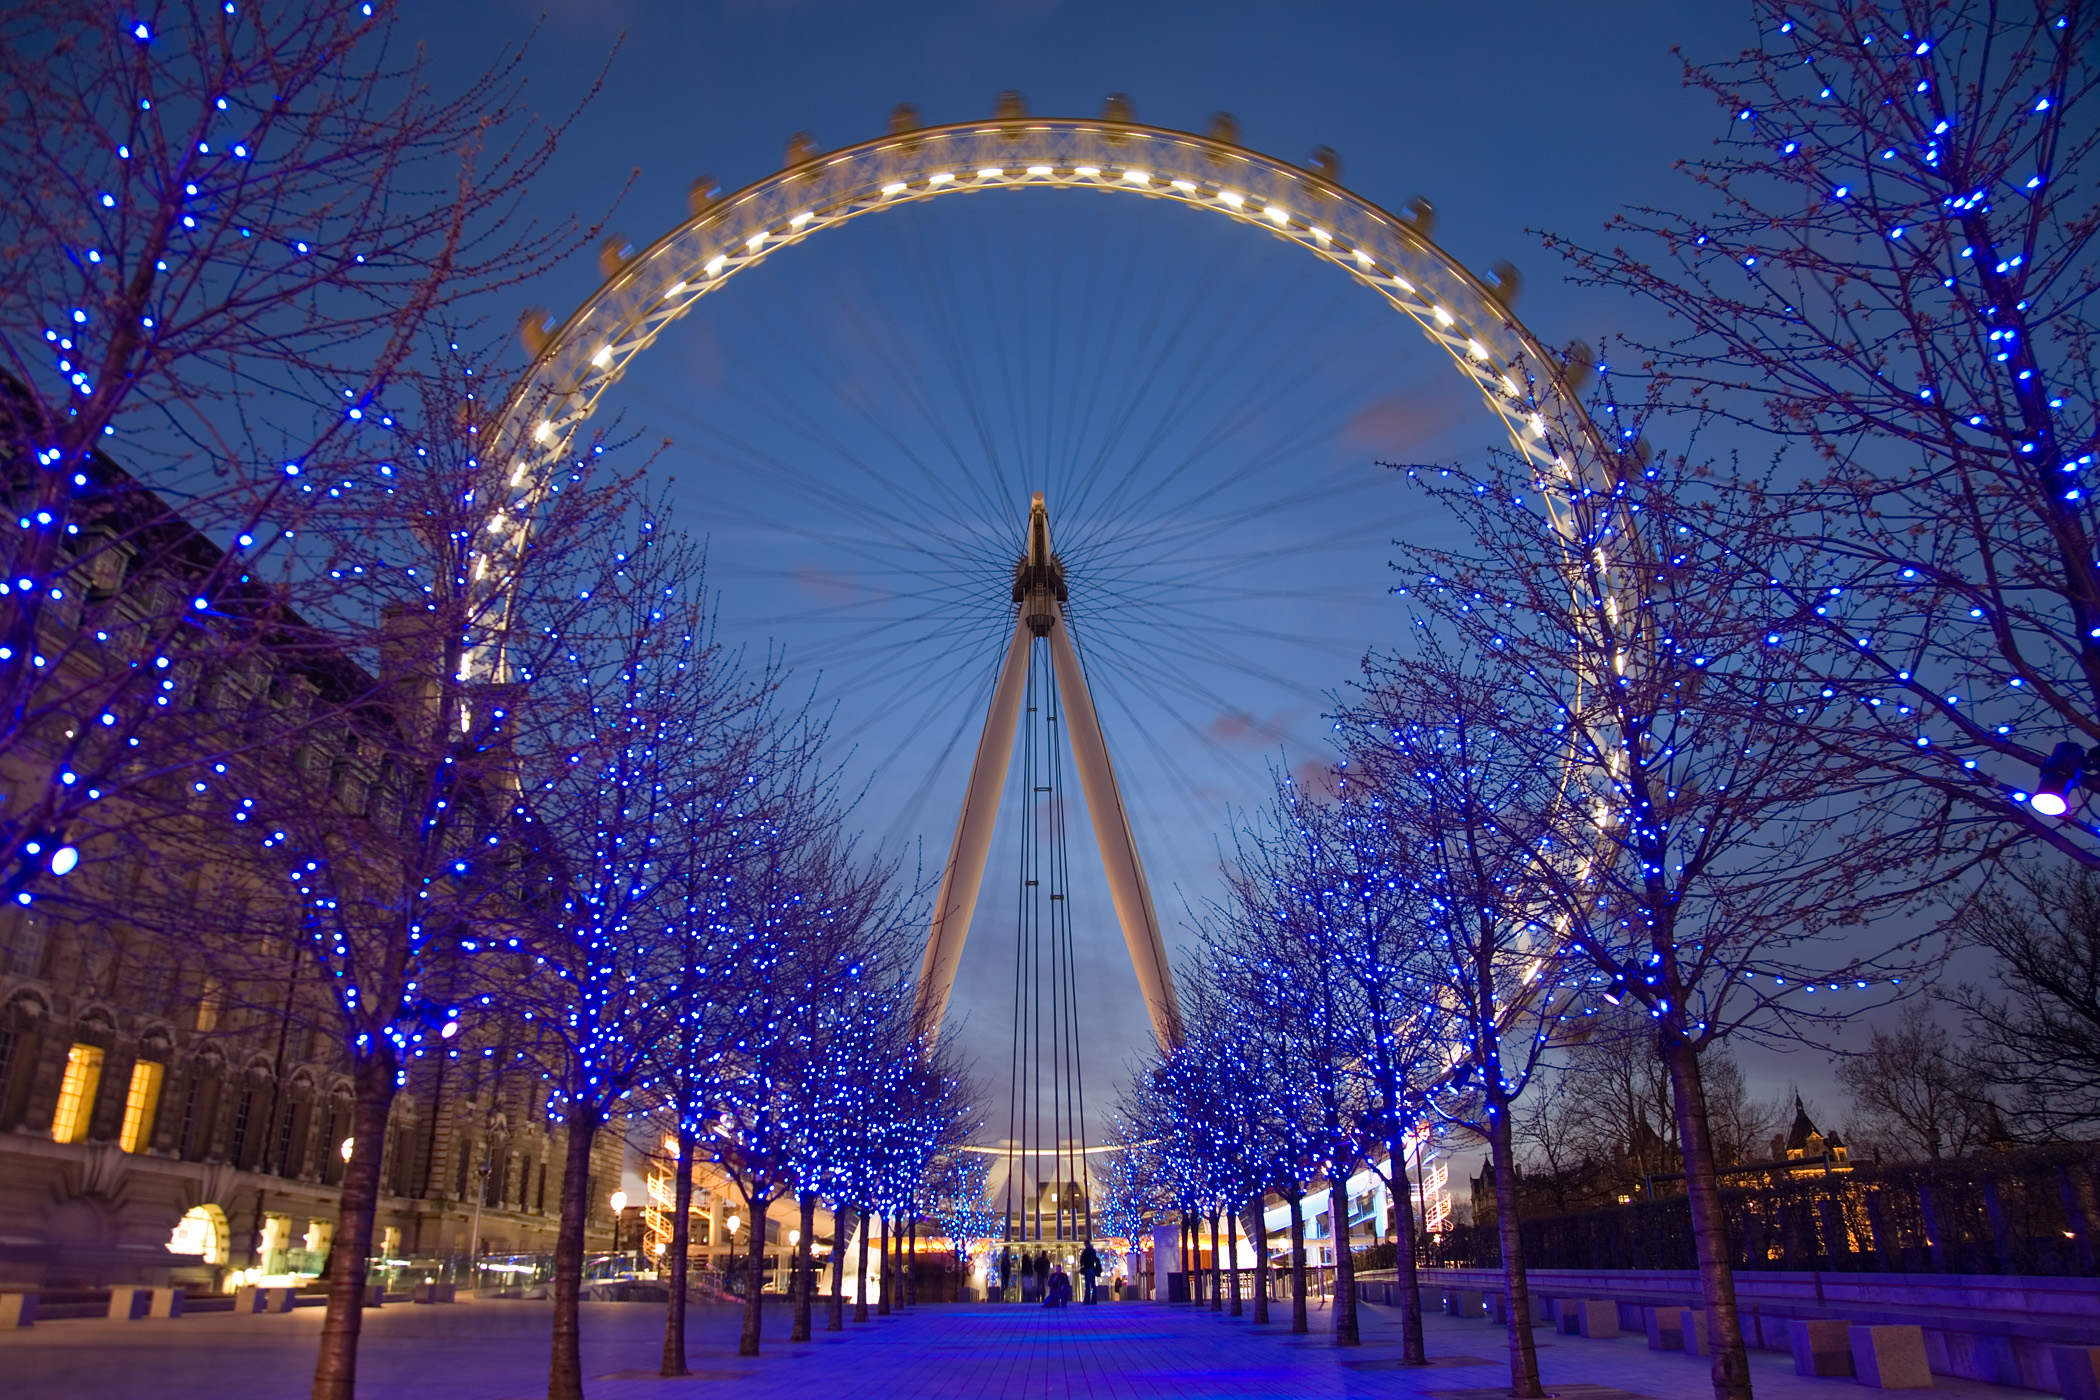 The lights of London. History comes alive at night ...